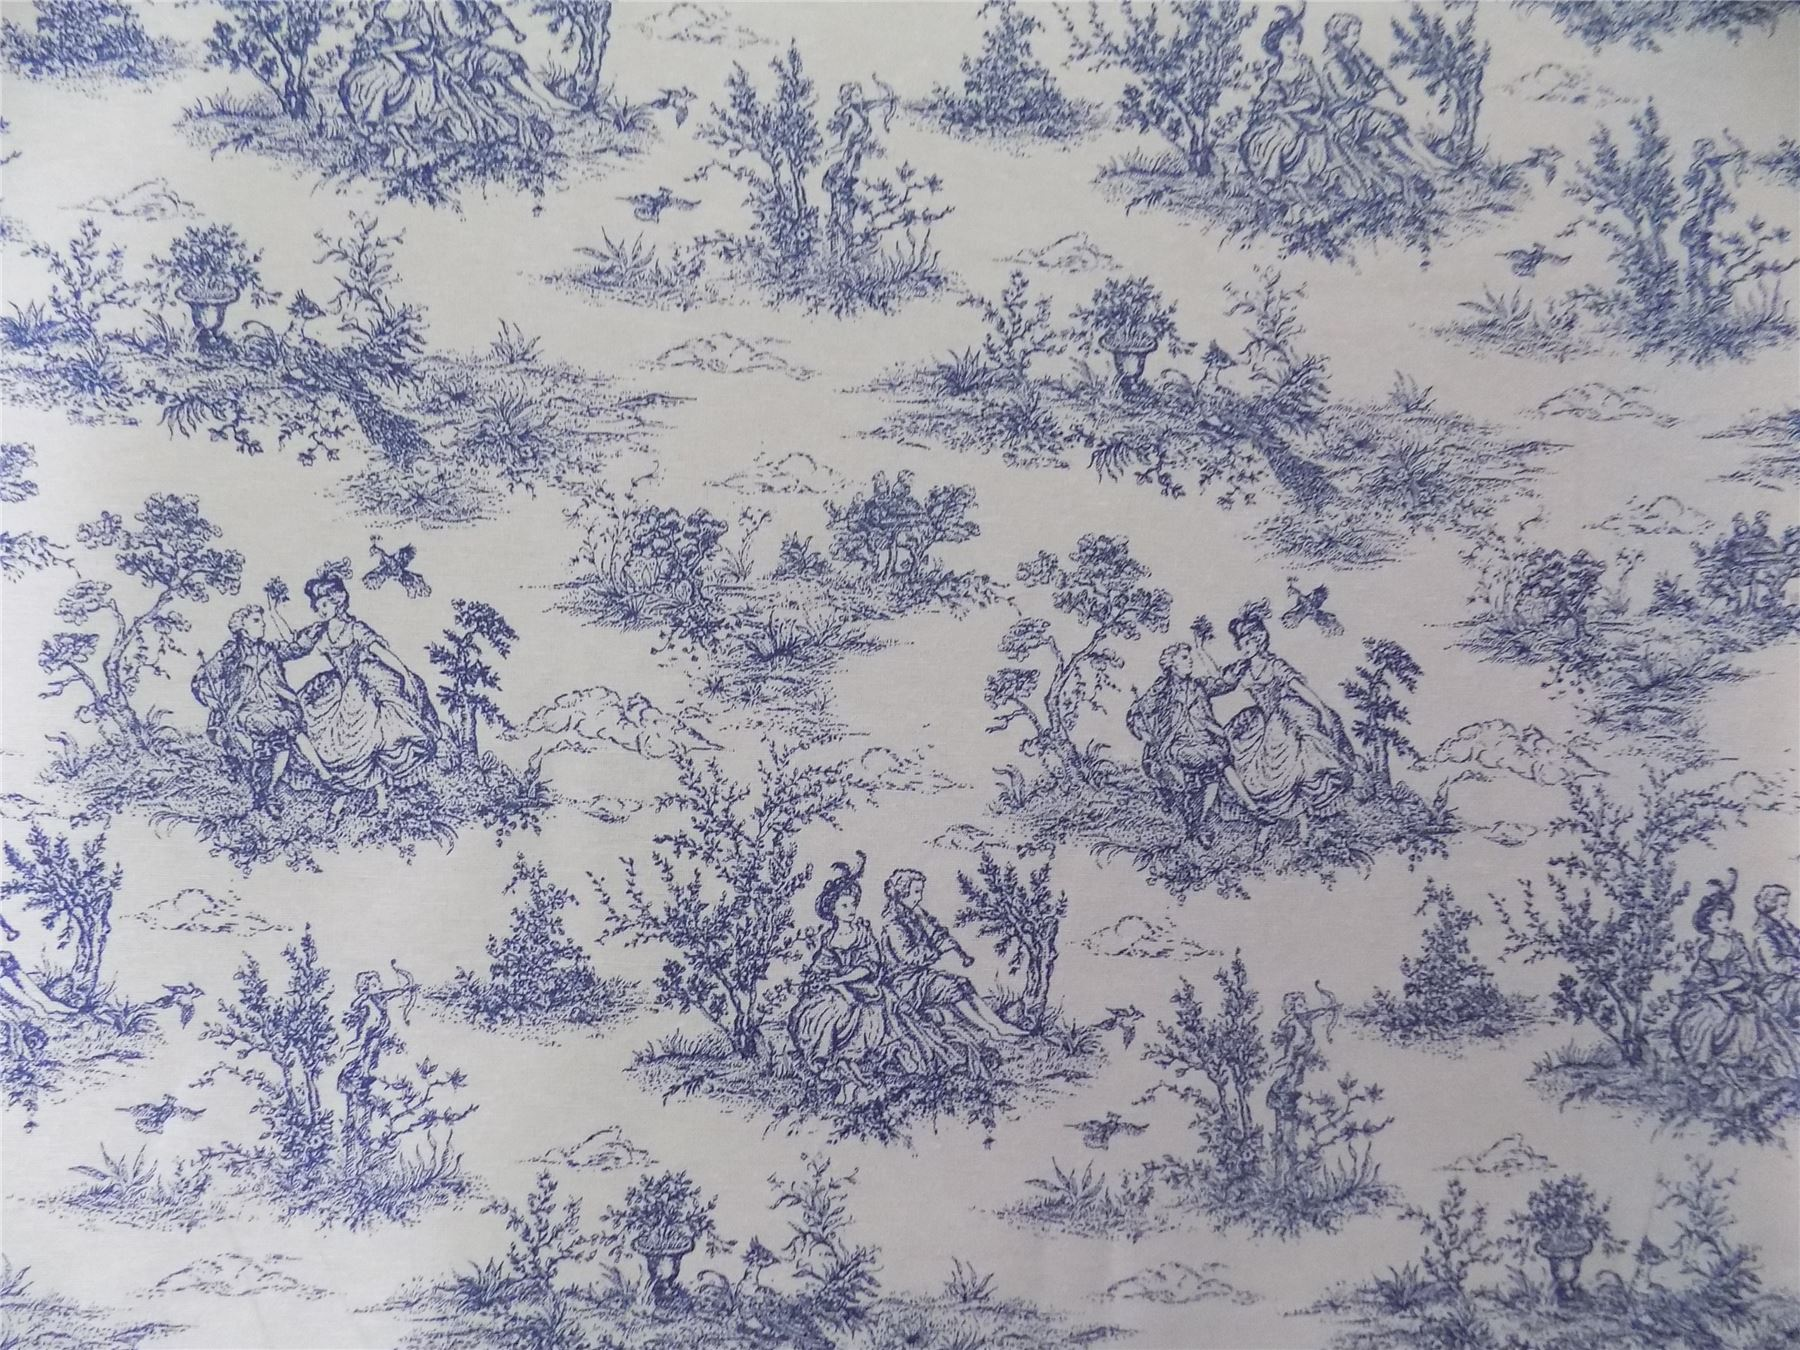 Vintage french lovers scenes toile de jouy navy cotton fabric material 3 sizes - Toile de jouy papier peint ...